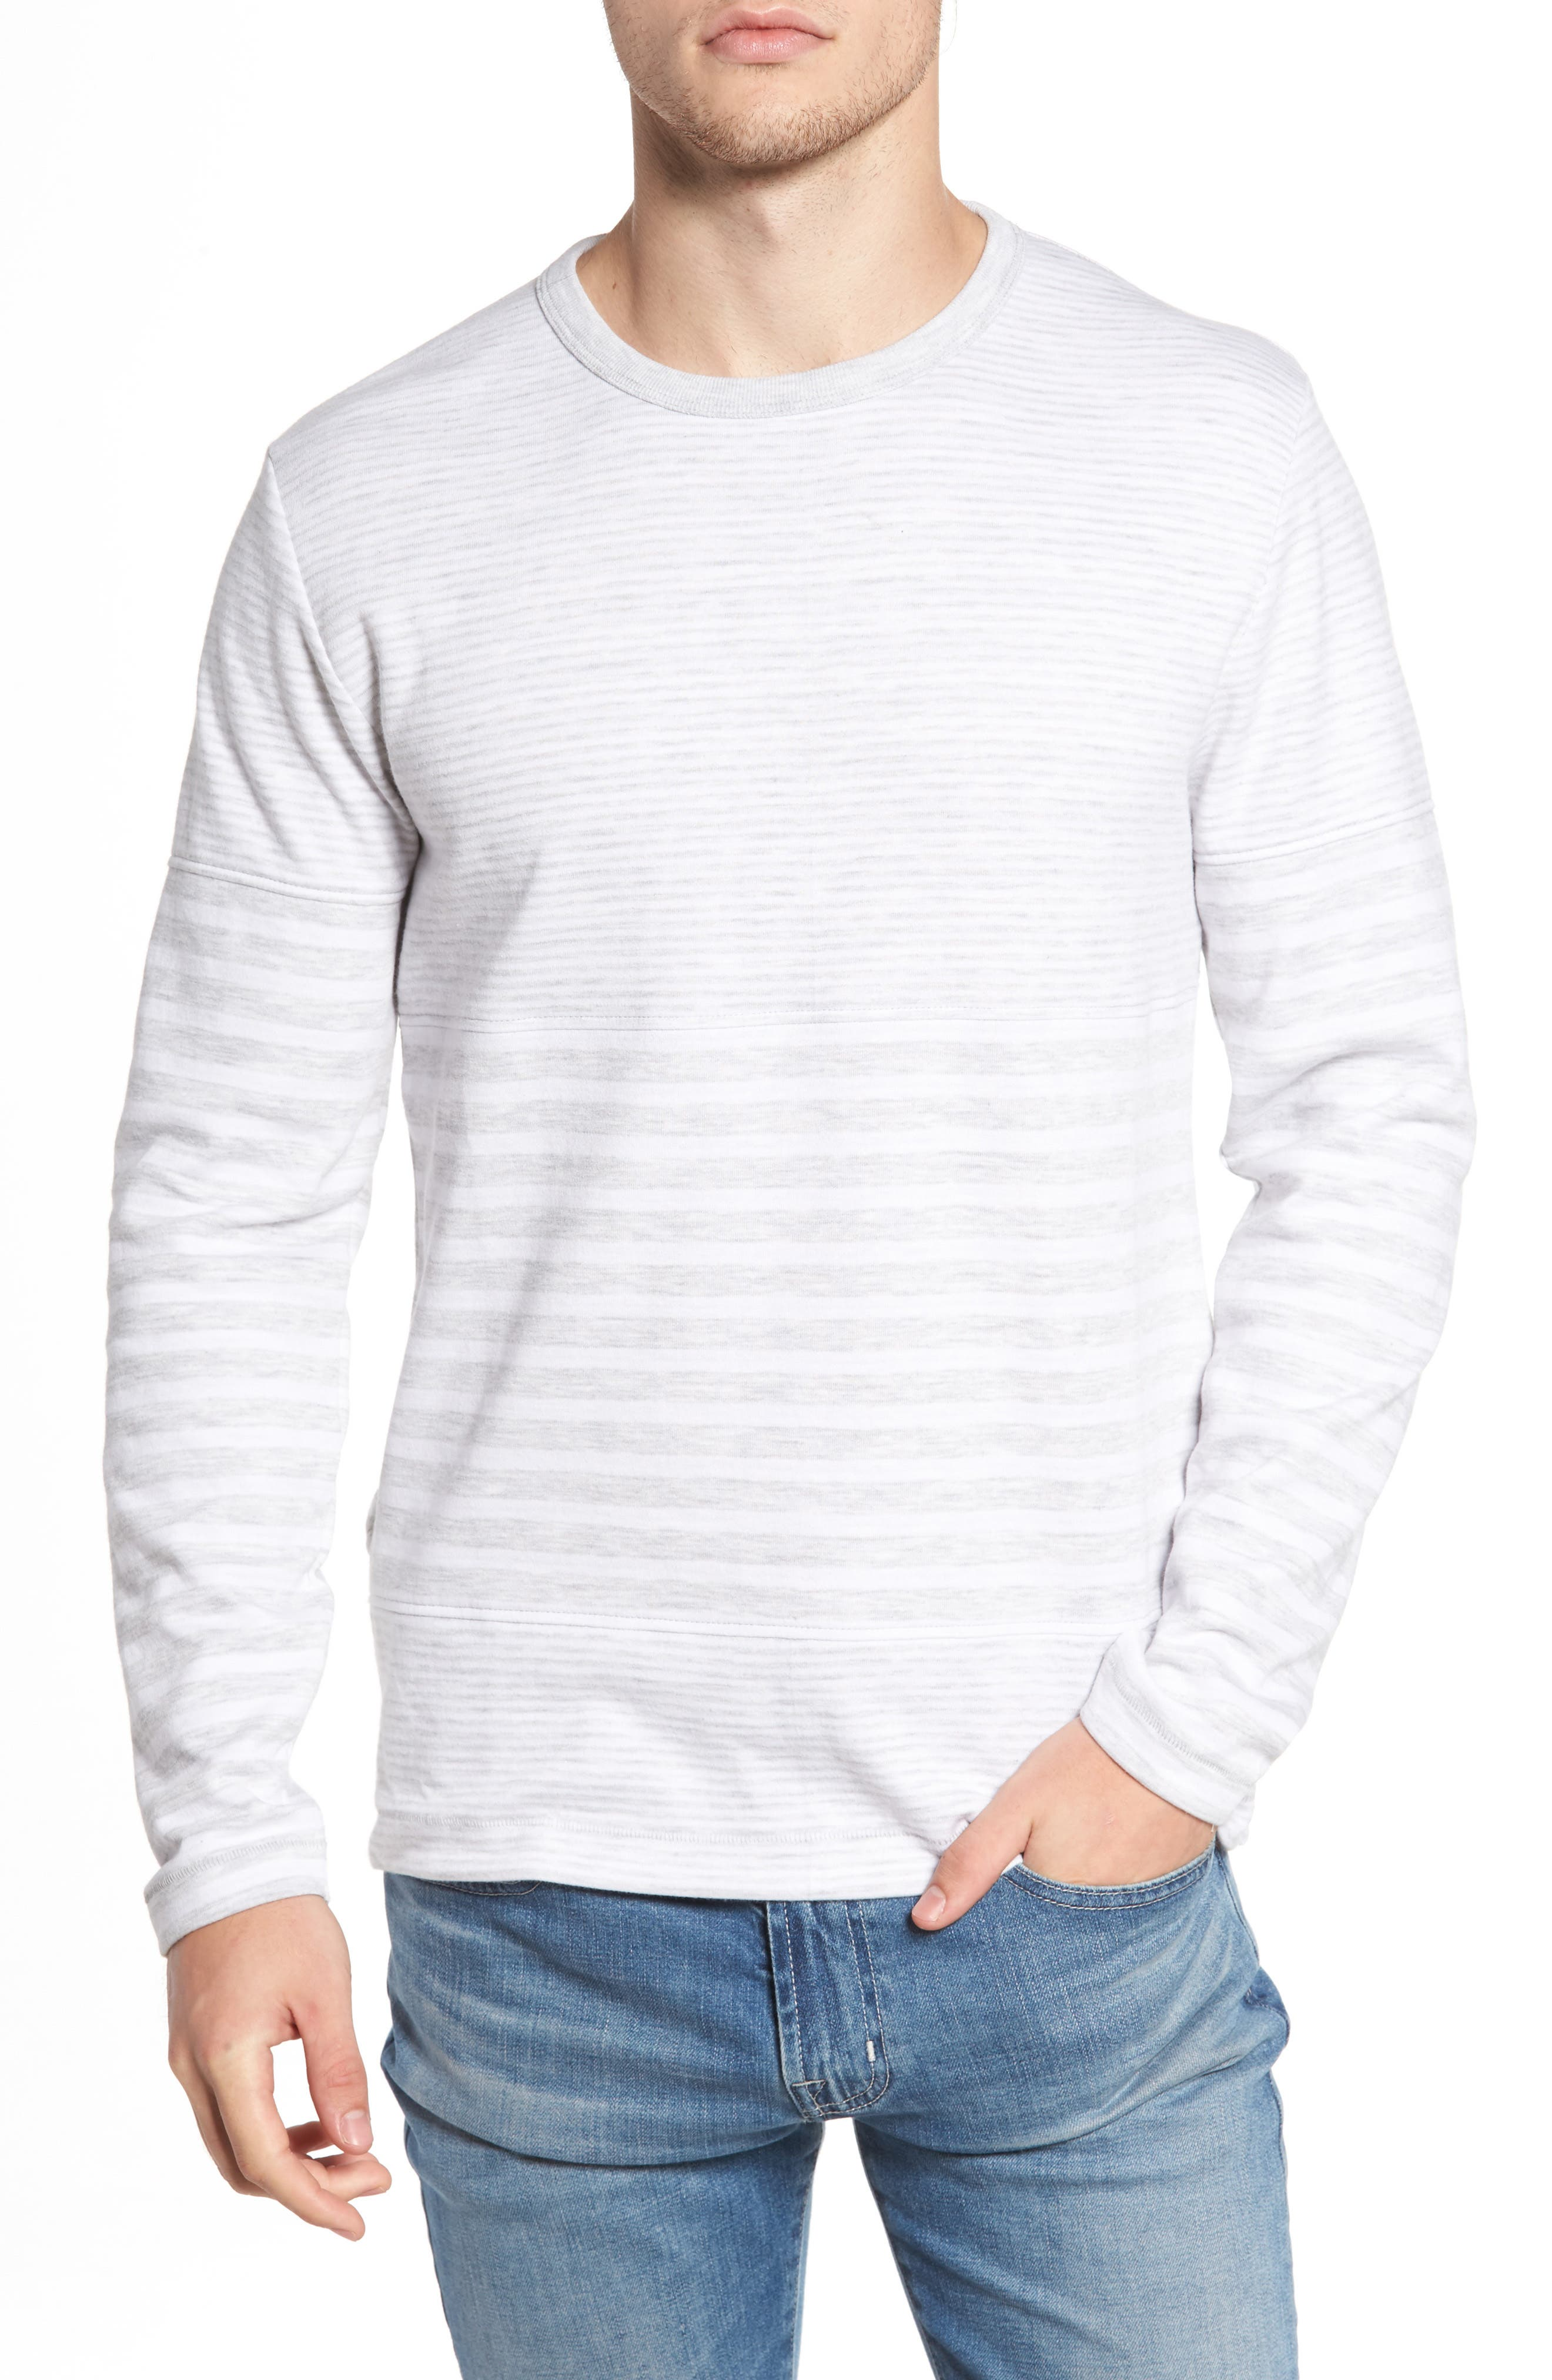 Alternate Image 1 Selected - French Connection Stripe Long Sleeve T-Shirt